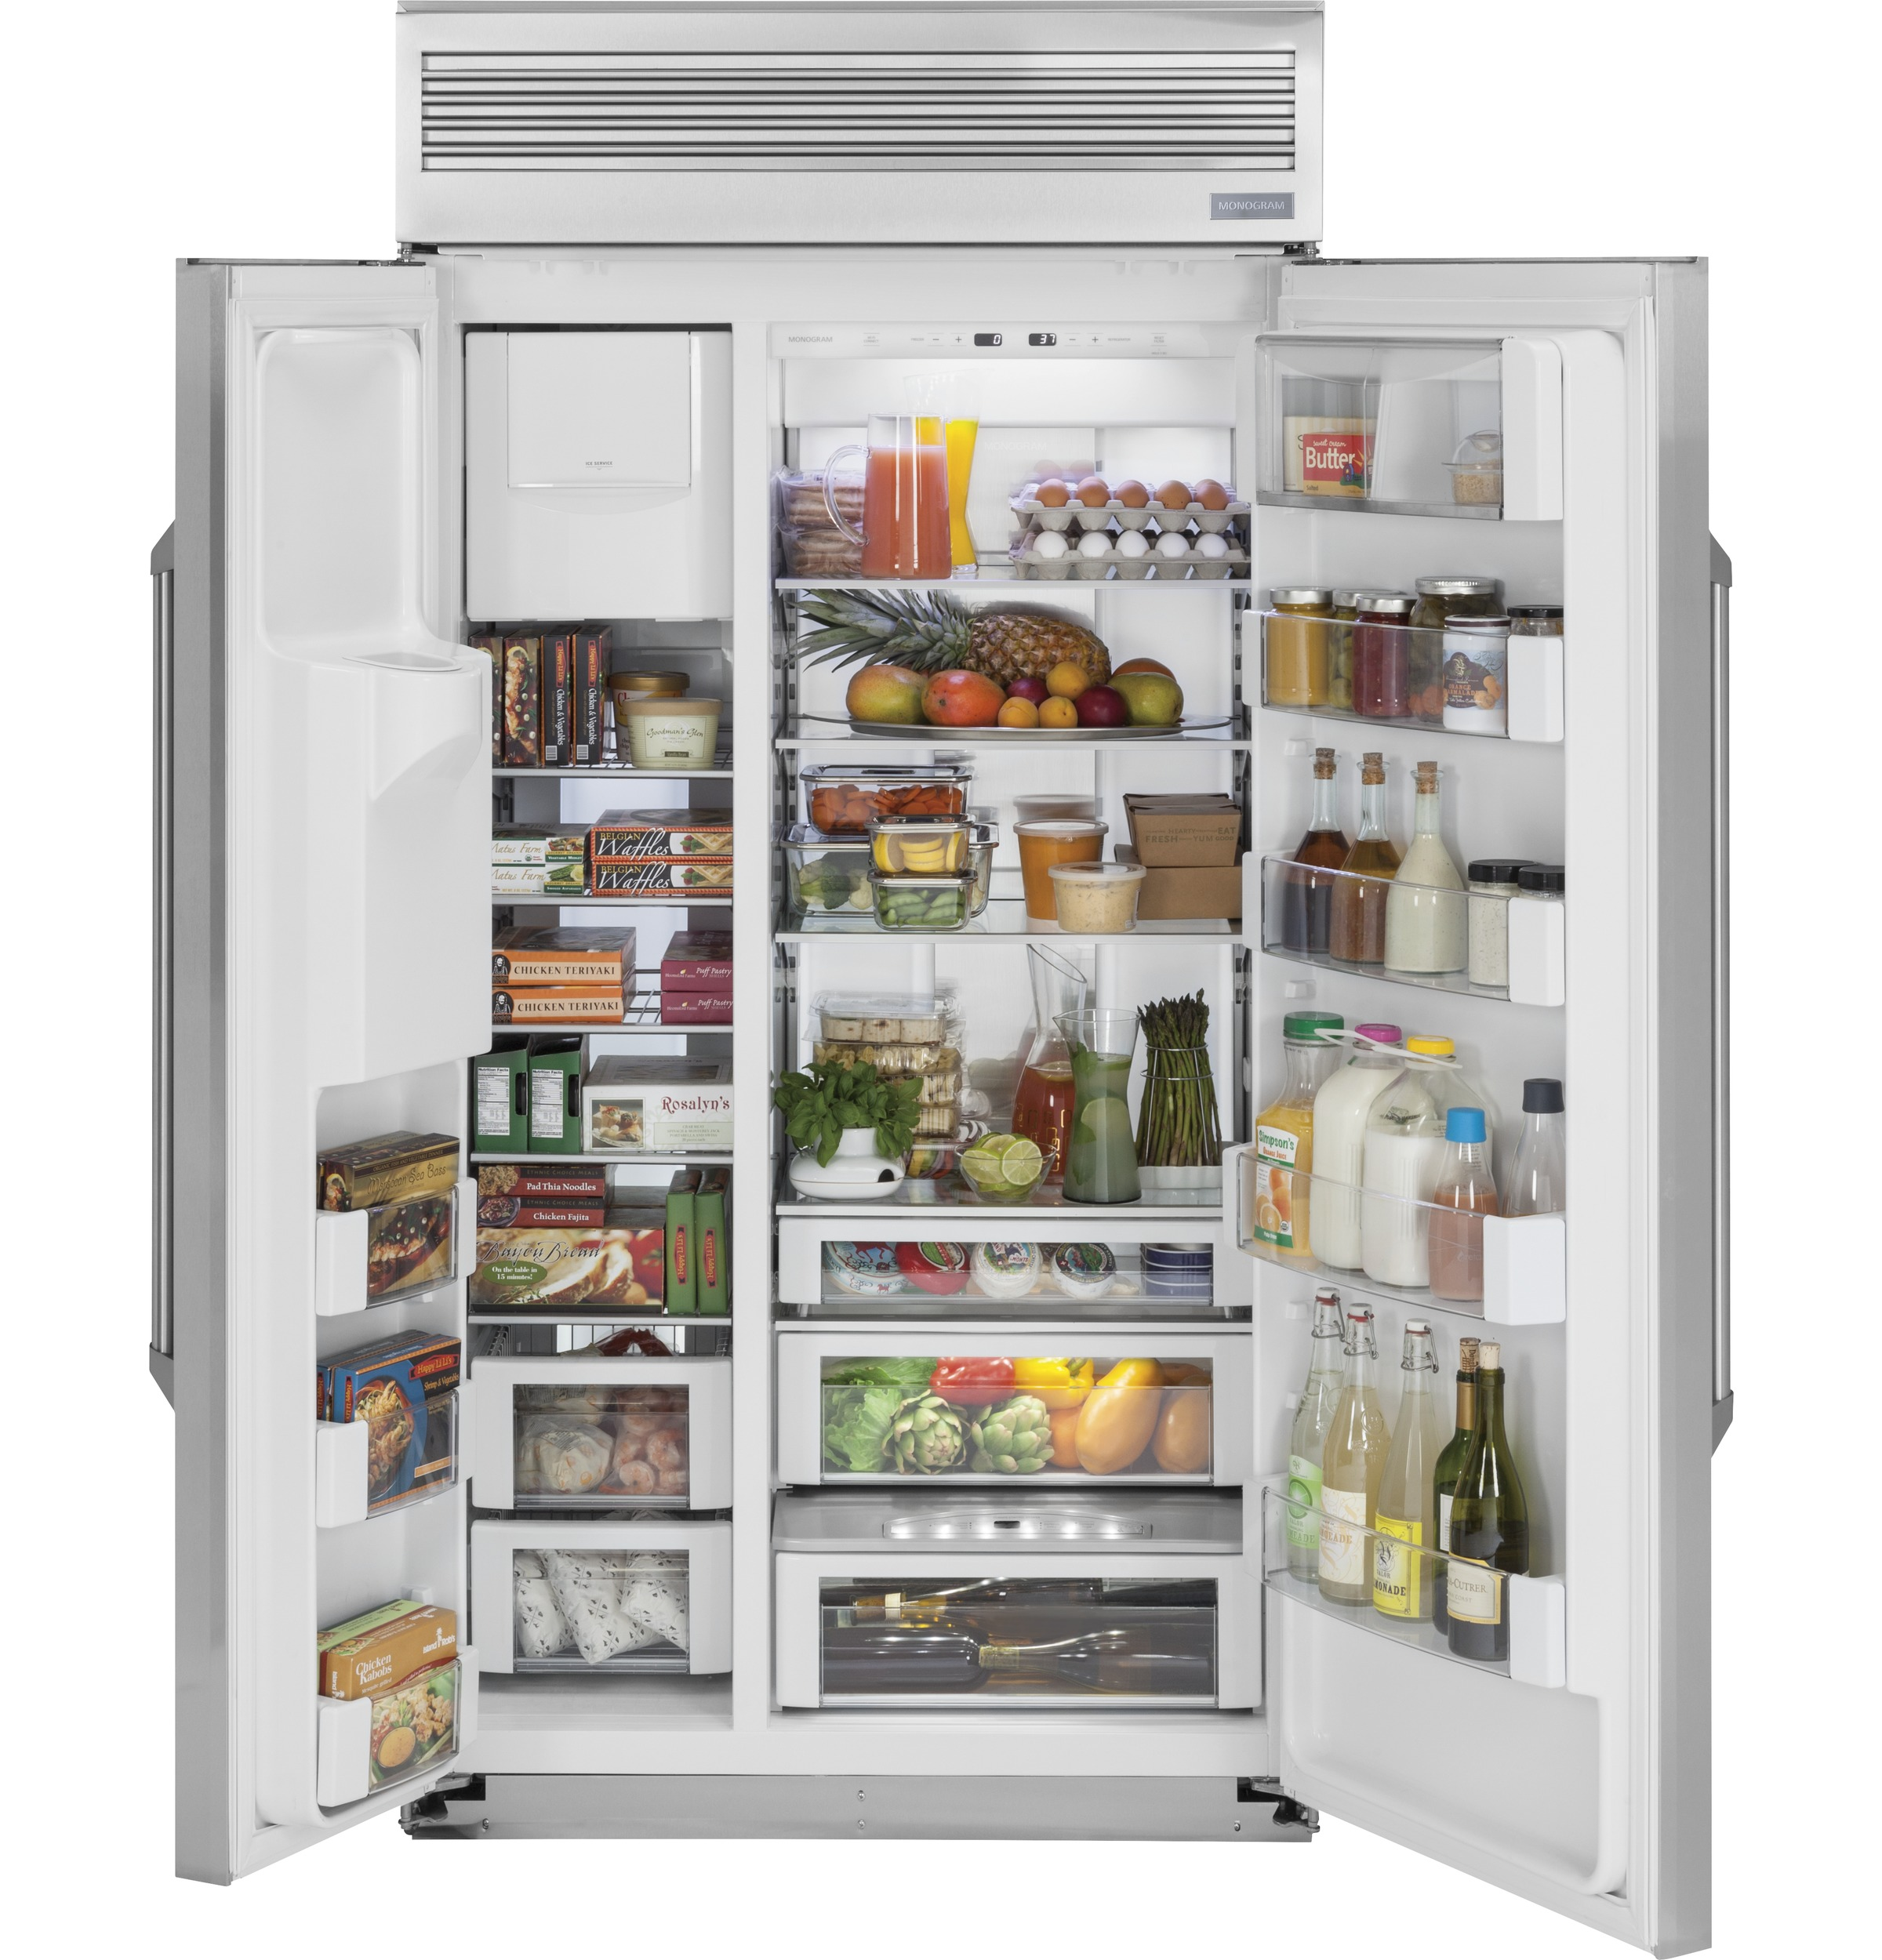 How to Deep Clean Your GE Monogram Fridge Every 3-4 Months